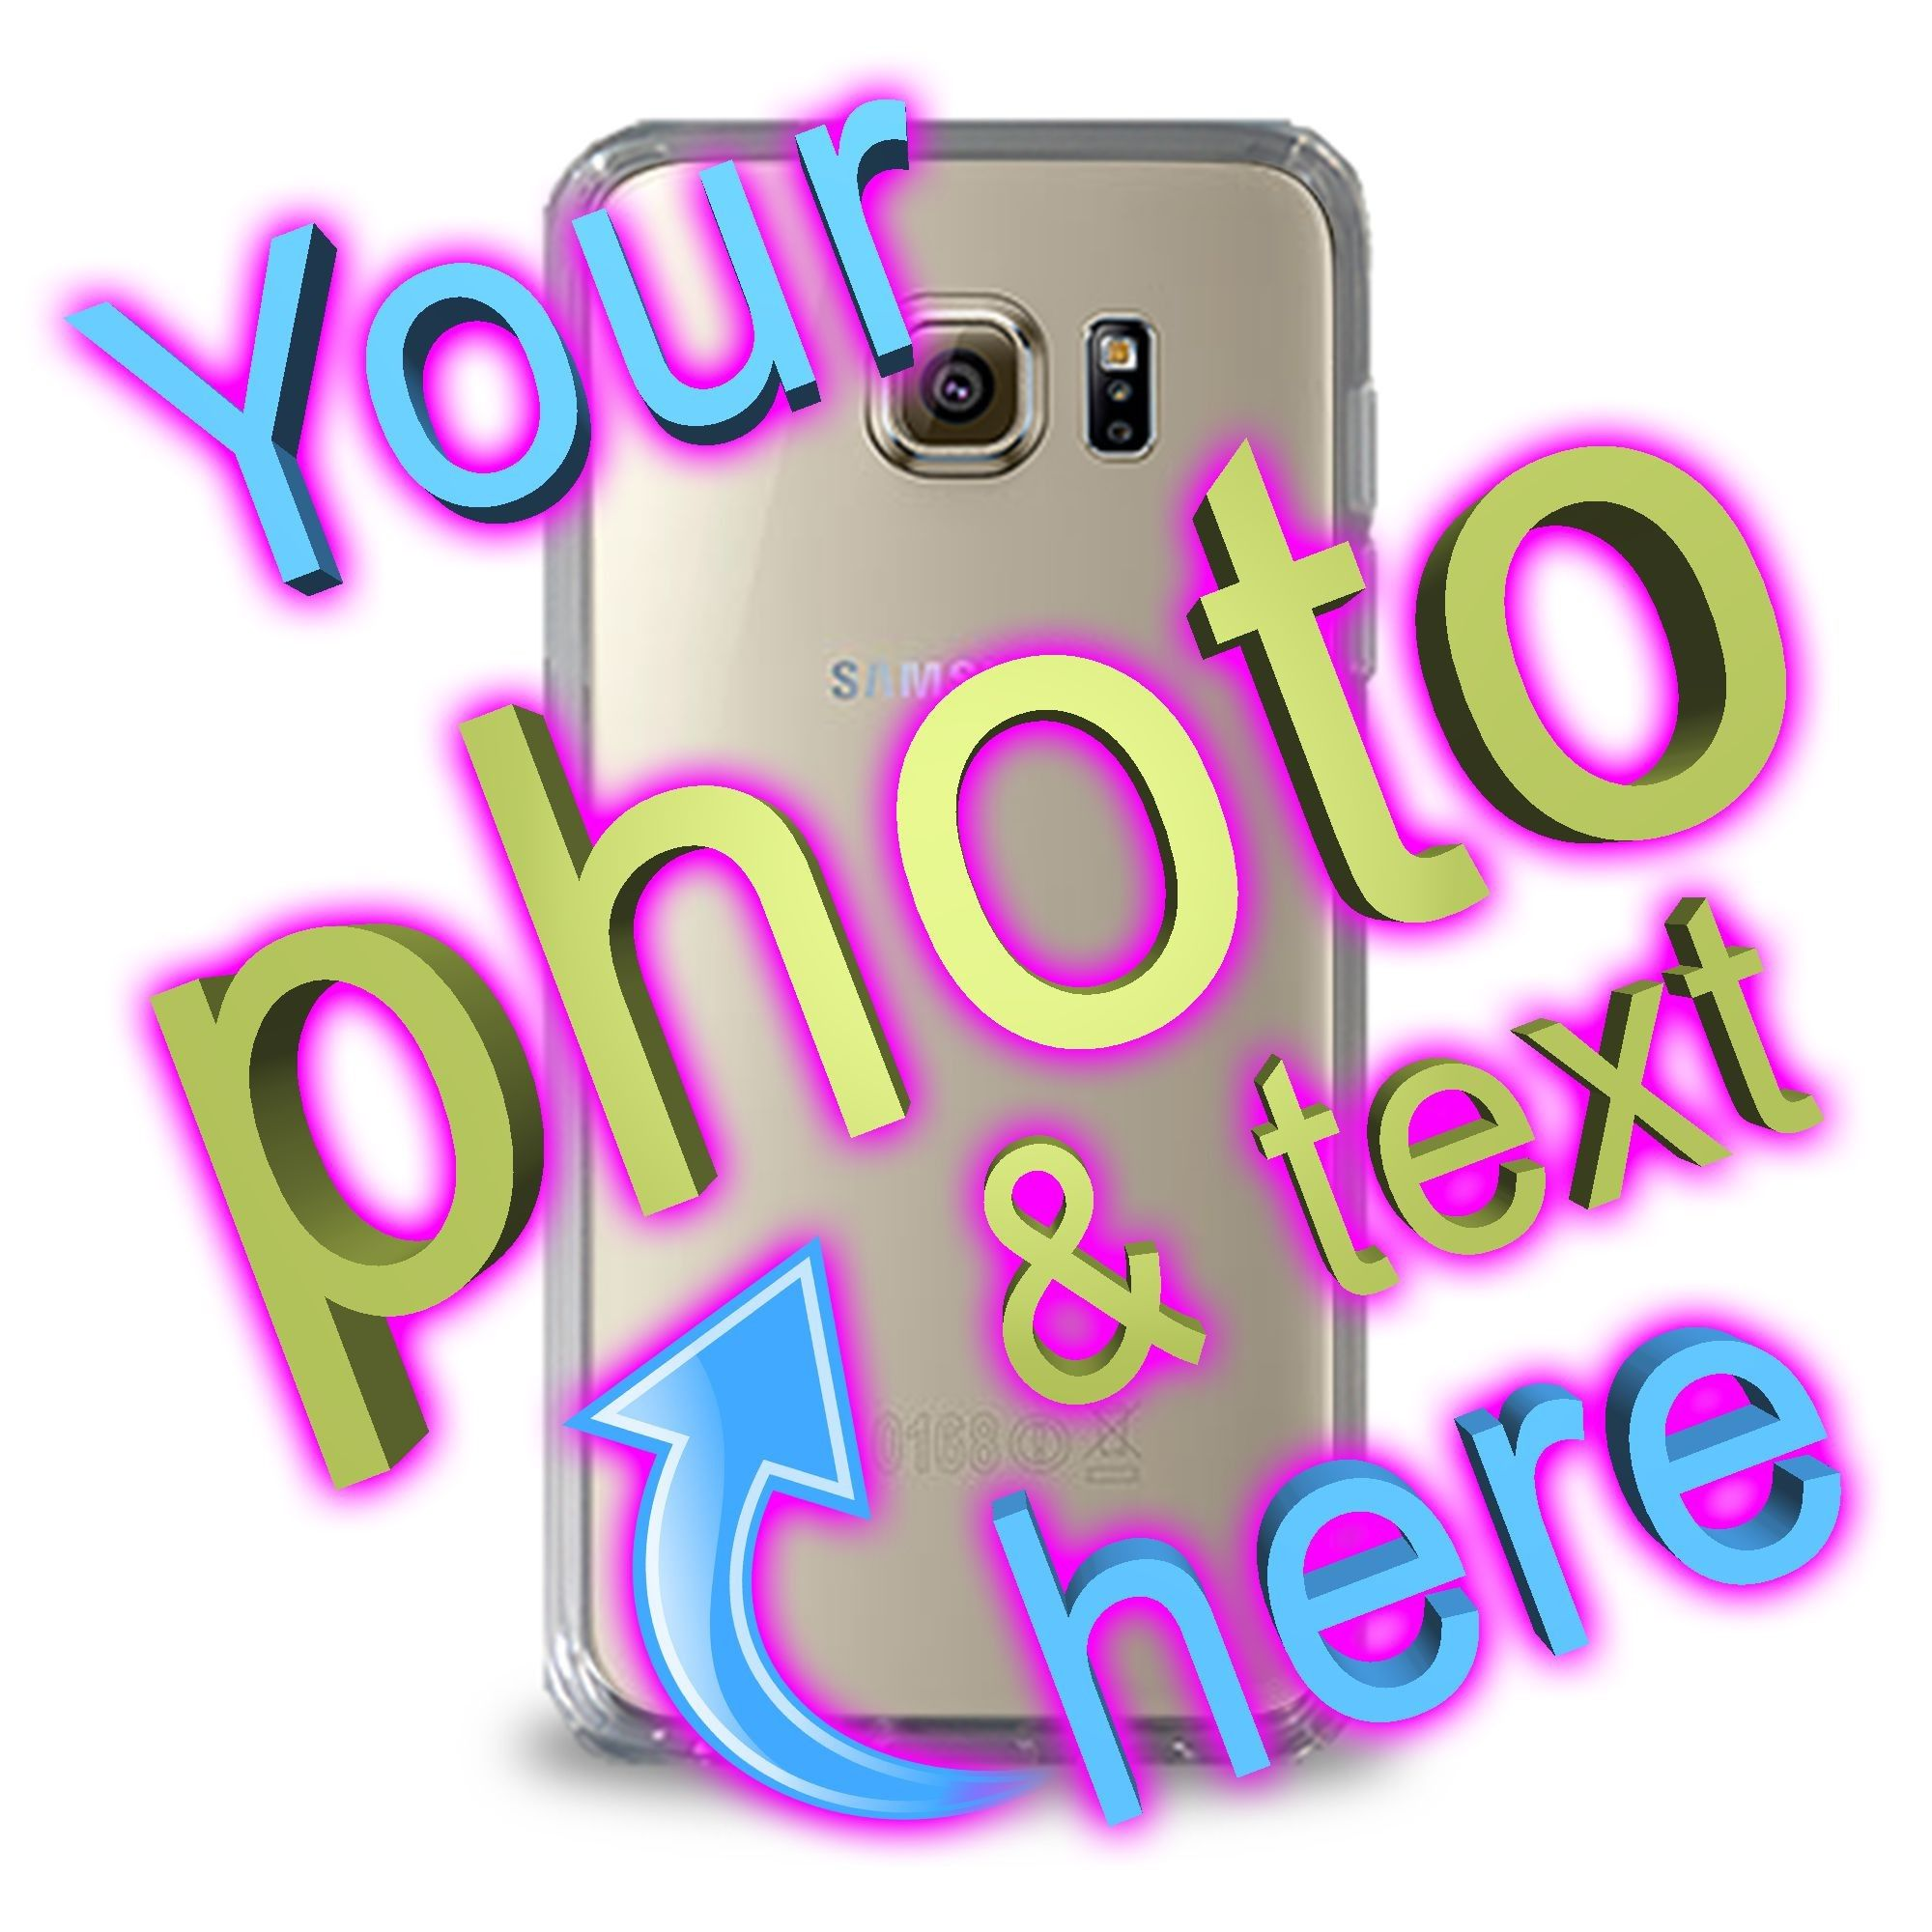 Clear galaxy s6 personalised phone cases personalized